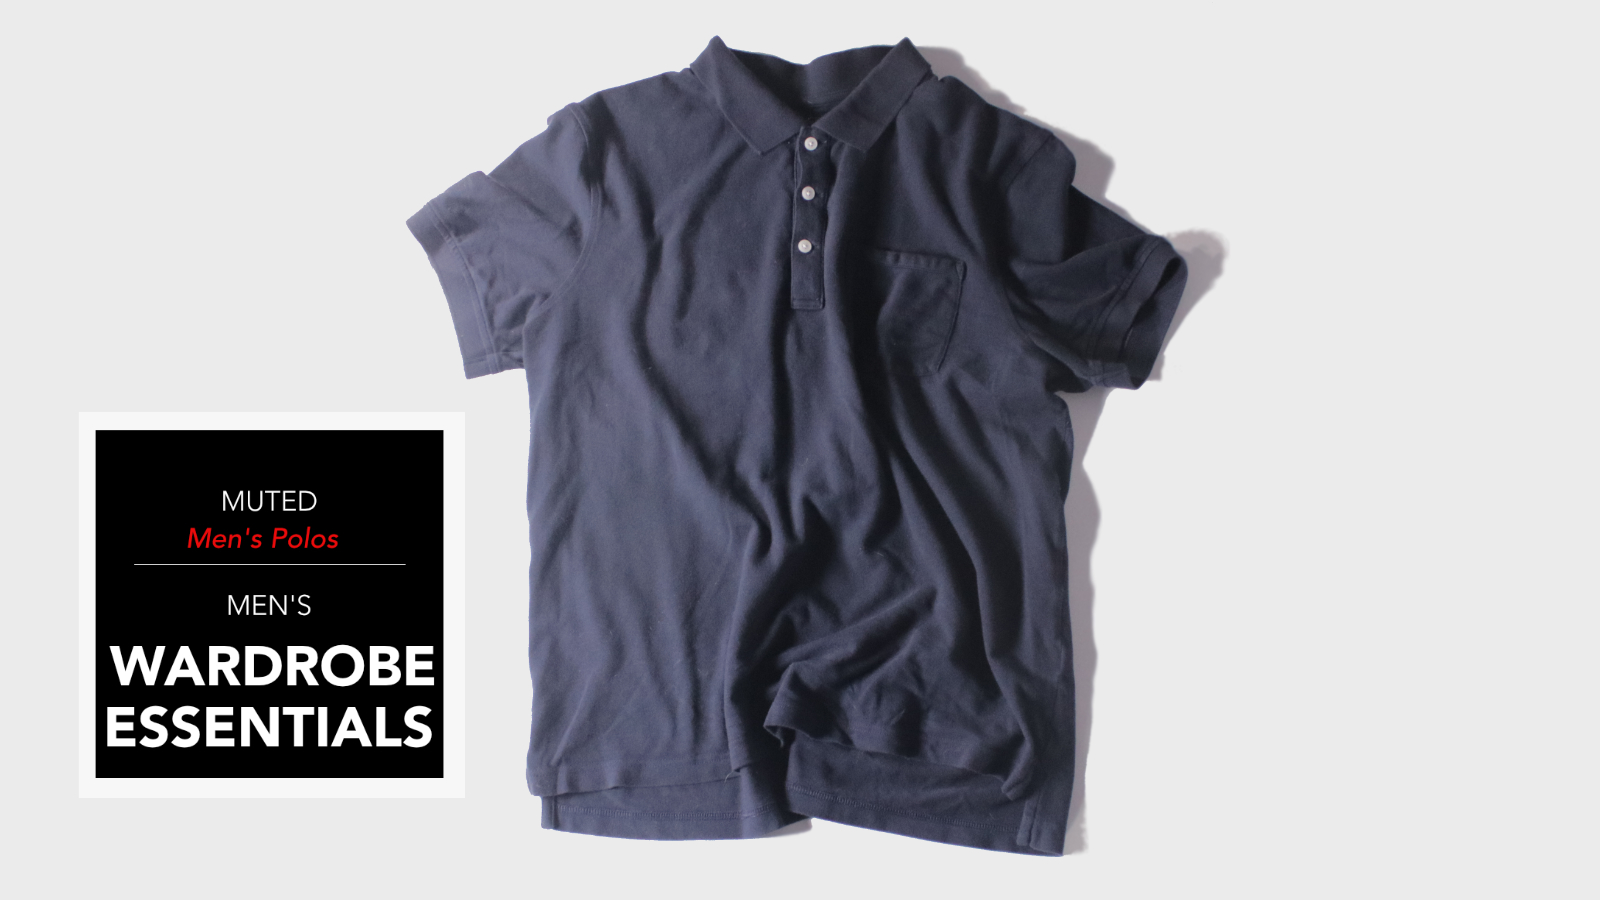 mens wardrobe essentials - the polo